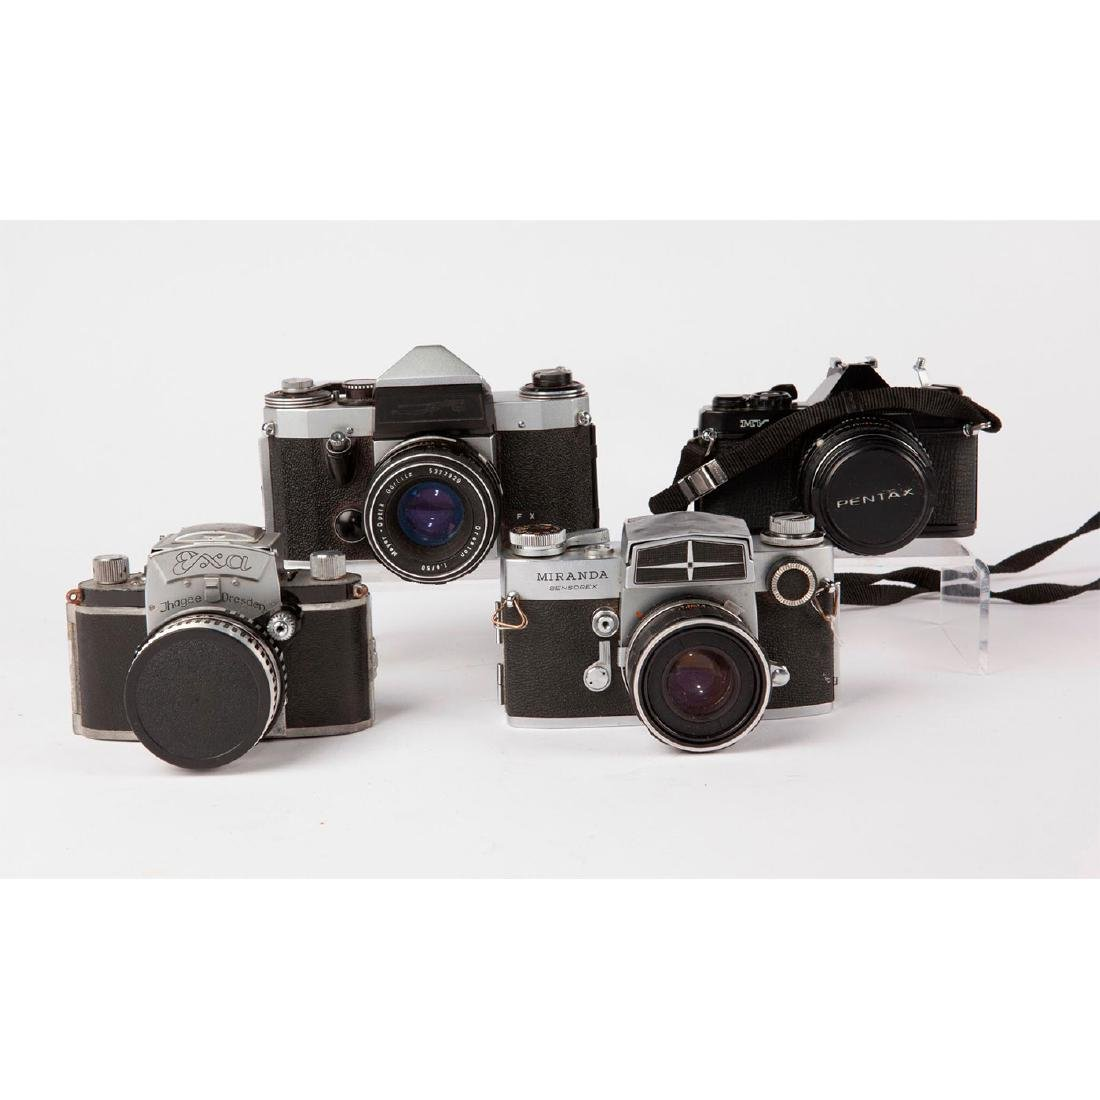 GROUP OF 4 VINTAGE MID CENTURY 35MM SLR CAMERAS